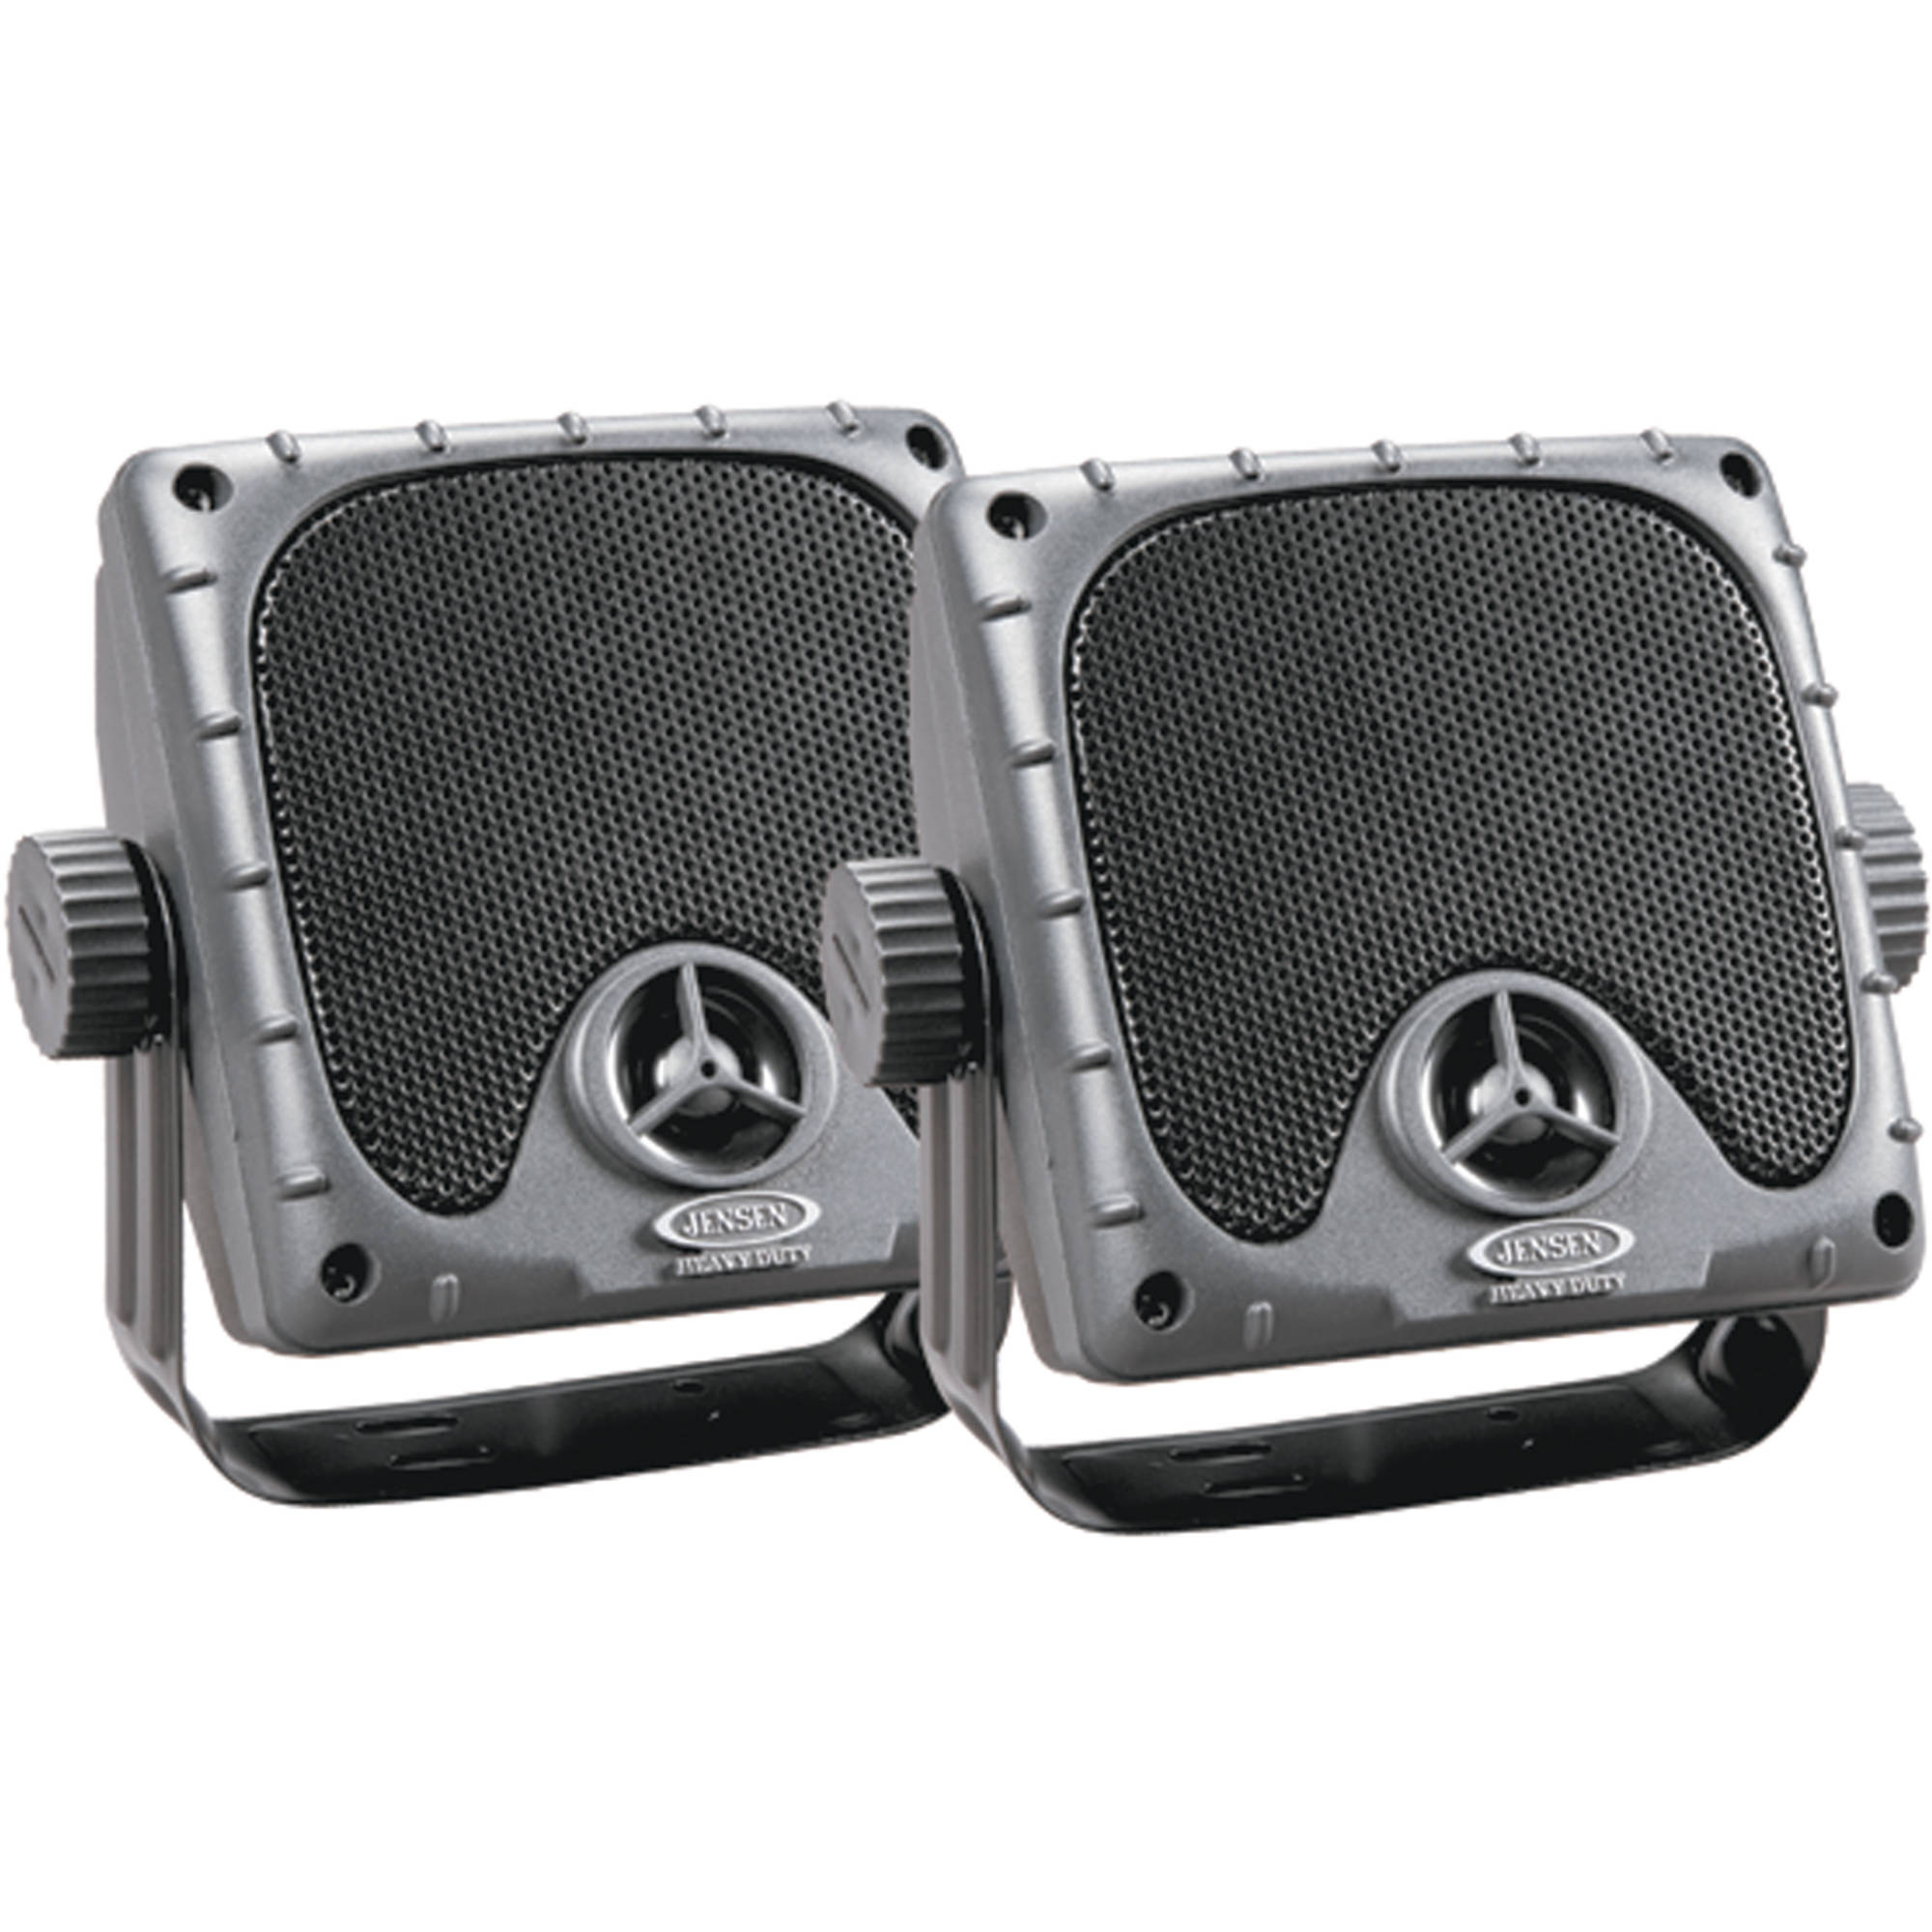 "Jensen JXHD35 Waterproof 3.5"" Mini 30W Surface Mount Marine Speakers, 1 Pair"